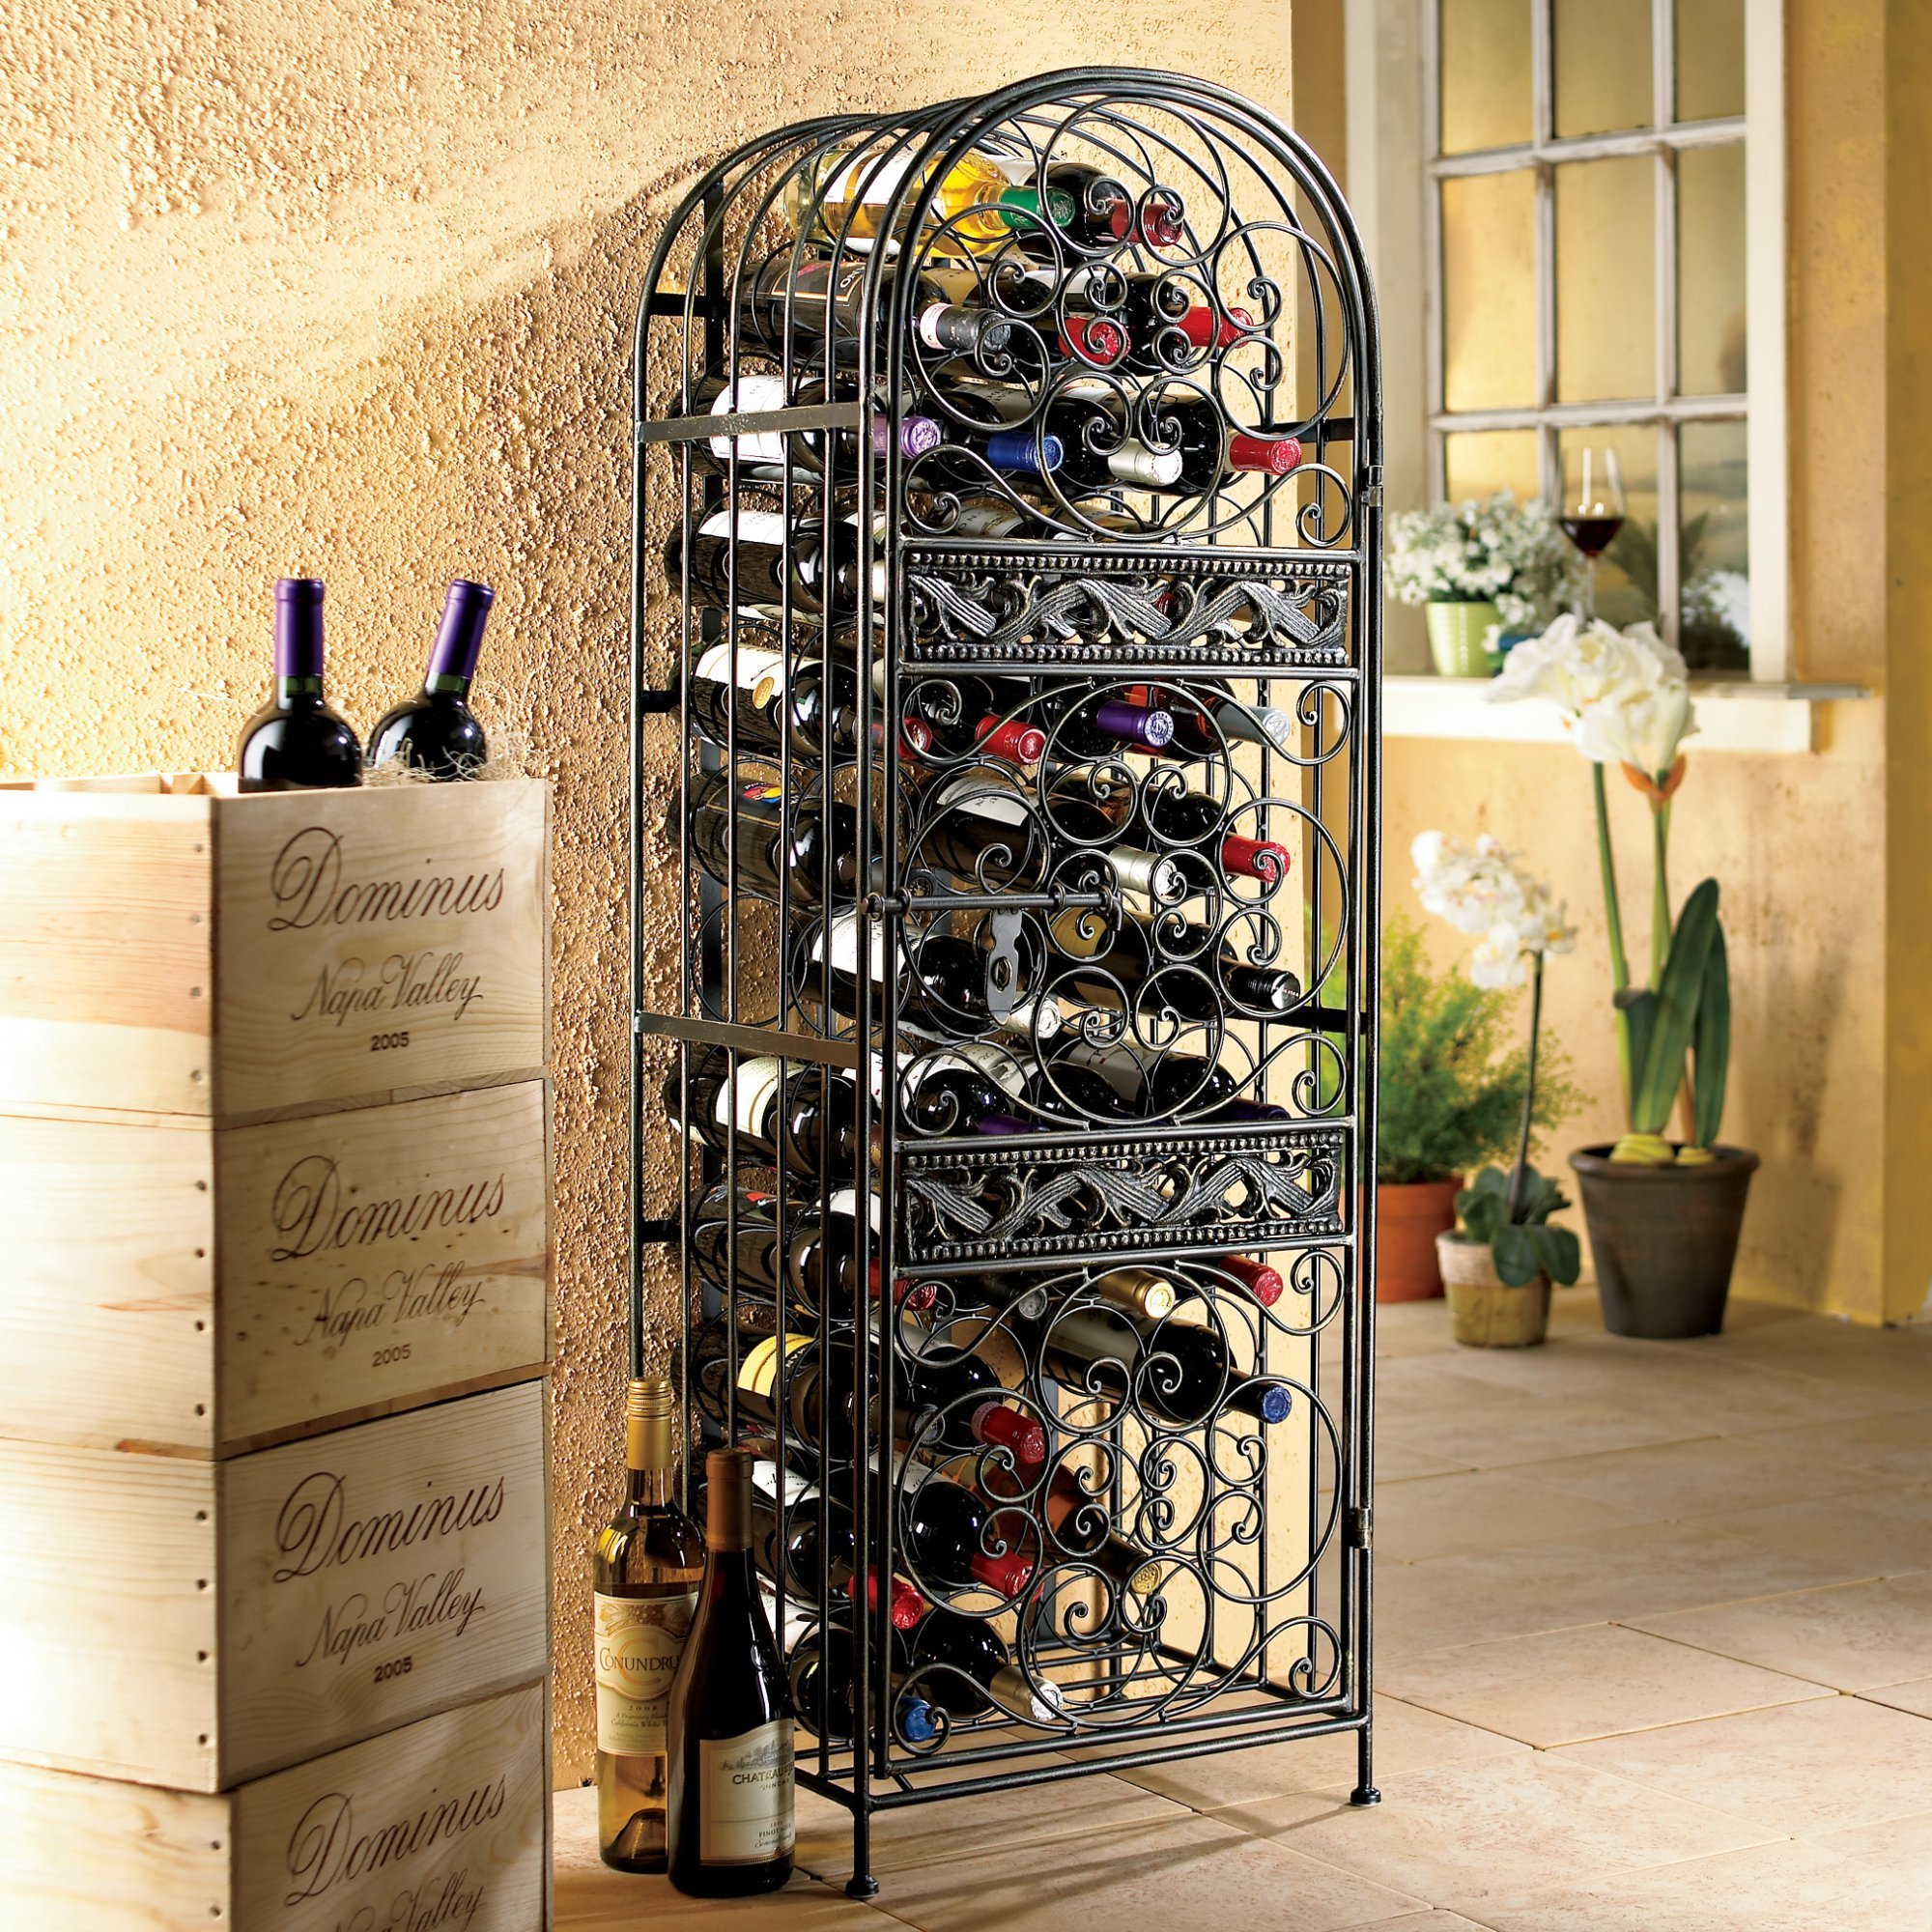 Metal Wine Racks Buy Metal Wine Racks Online At Overstock Our Best Kitchen